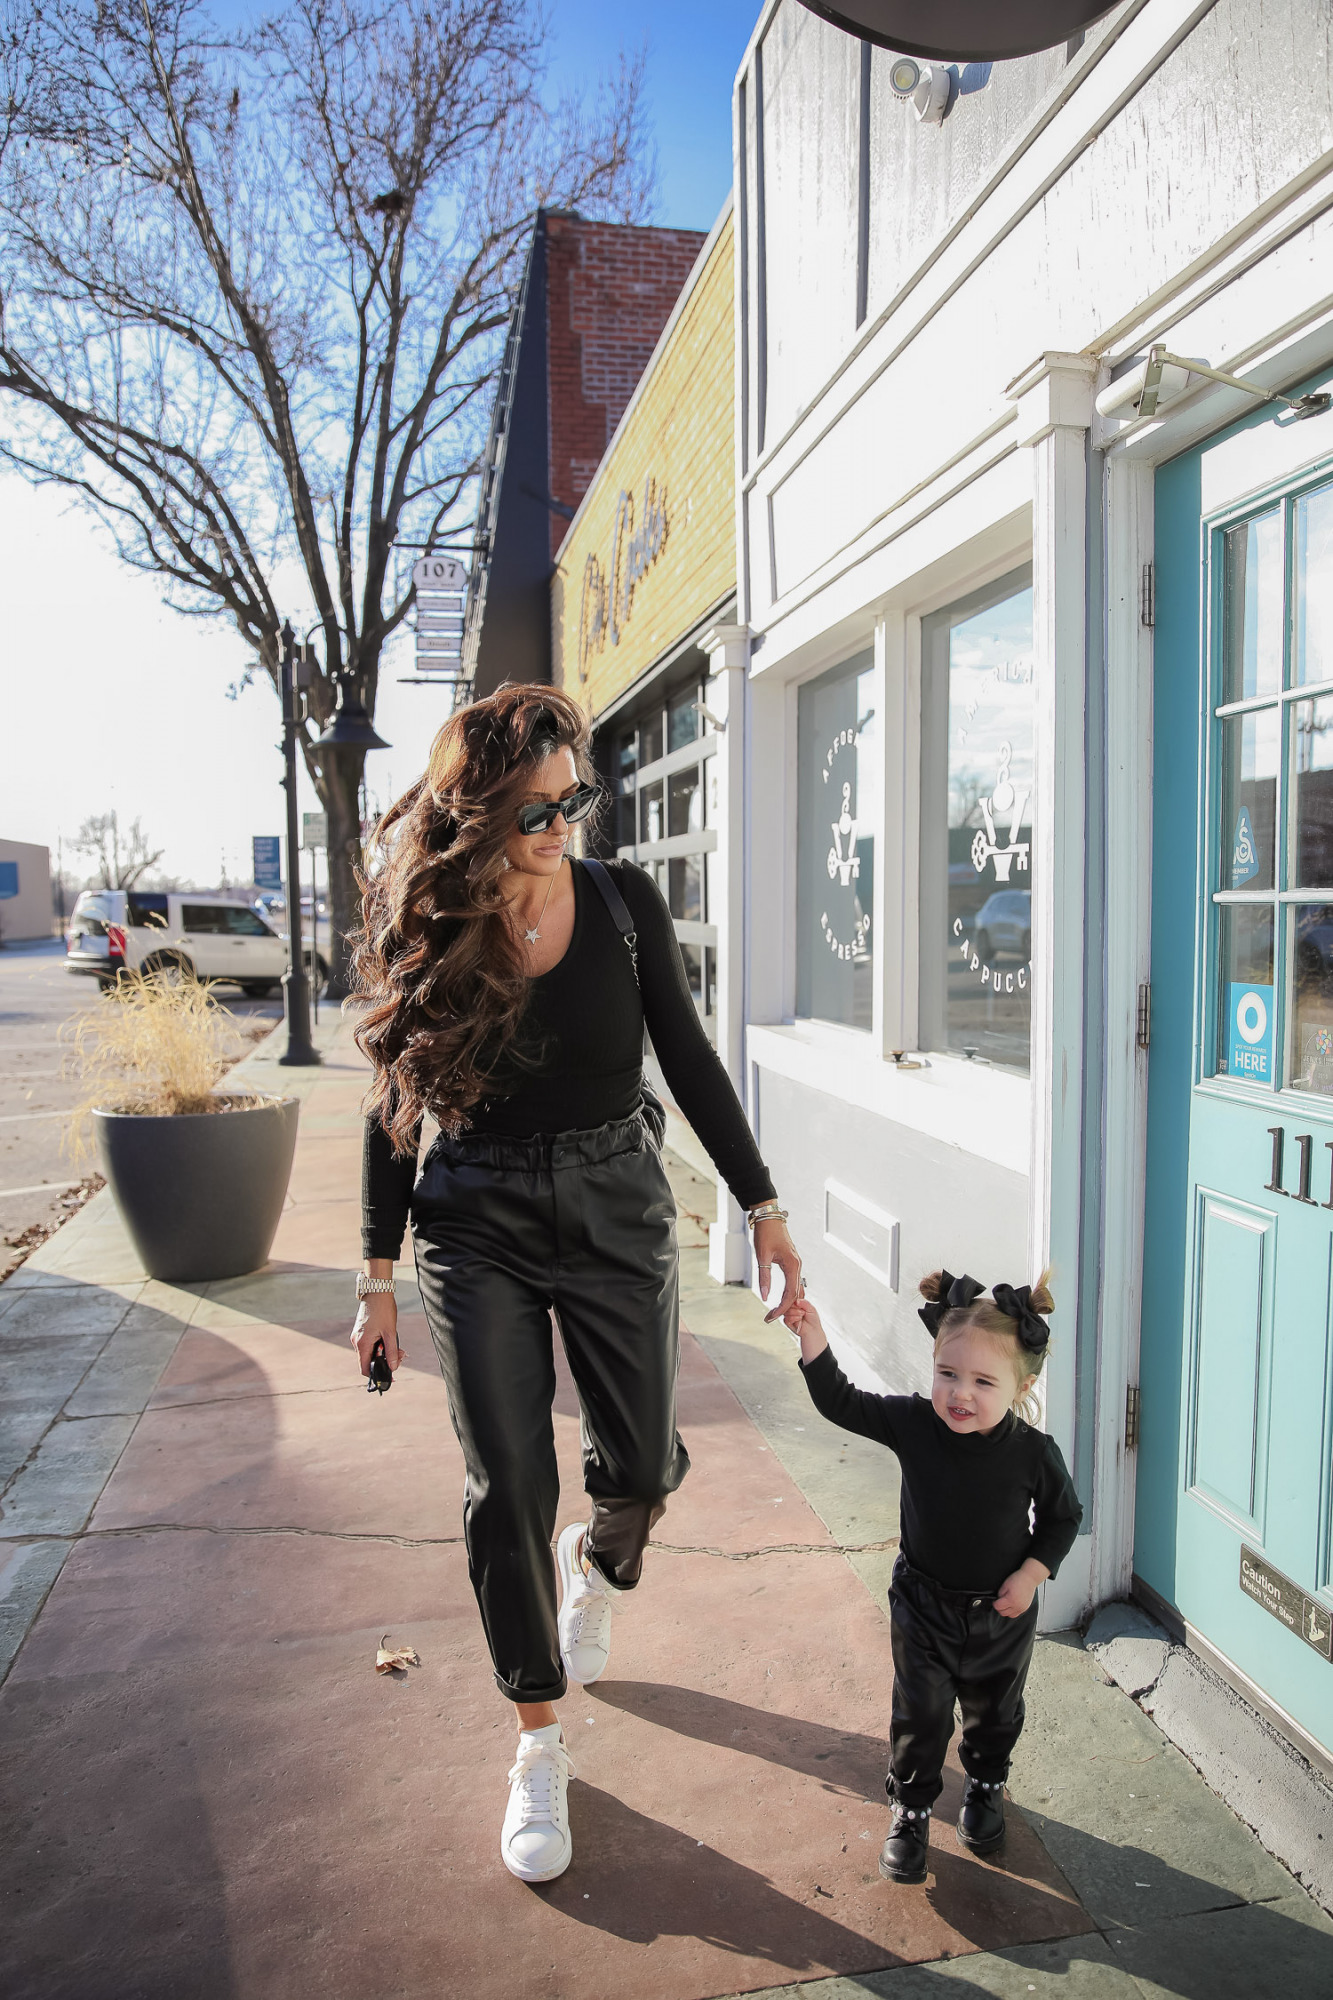 matching mommy daughter fashion outfits Pinterest, Emily Gemma, Nordstrom BP faux leather pants, loewe sunglasses, Alexander mcqueen sneakers gold white outfit pinterest | Mommy and Daughter by popular US fashion blog, The Sweetest Thing: image of a woman and her daughter walking together outside and wearing a pair of BP faux leather pants, Good American top, loewe sunglasses, Alexander mcqueen sneakers, Monica Vinader ring, Nadri bracelet, Nadri earrings, and Rolex watch.